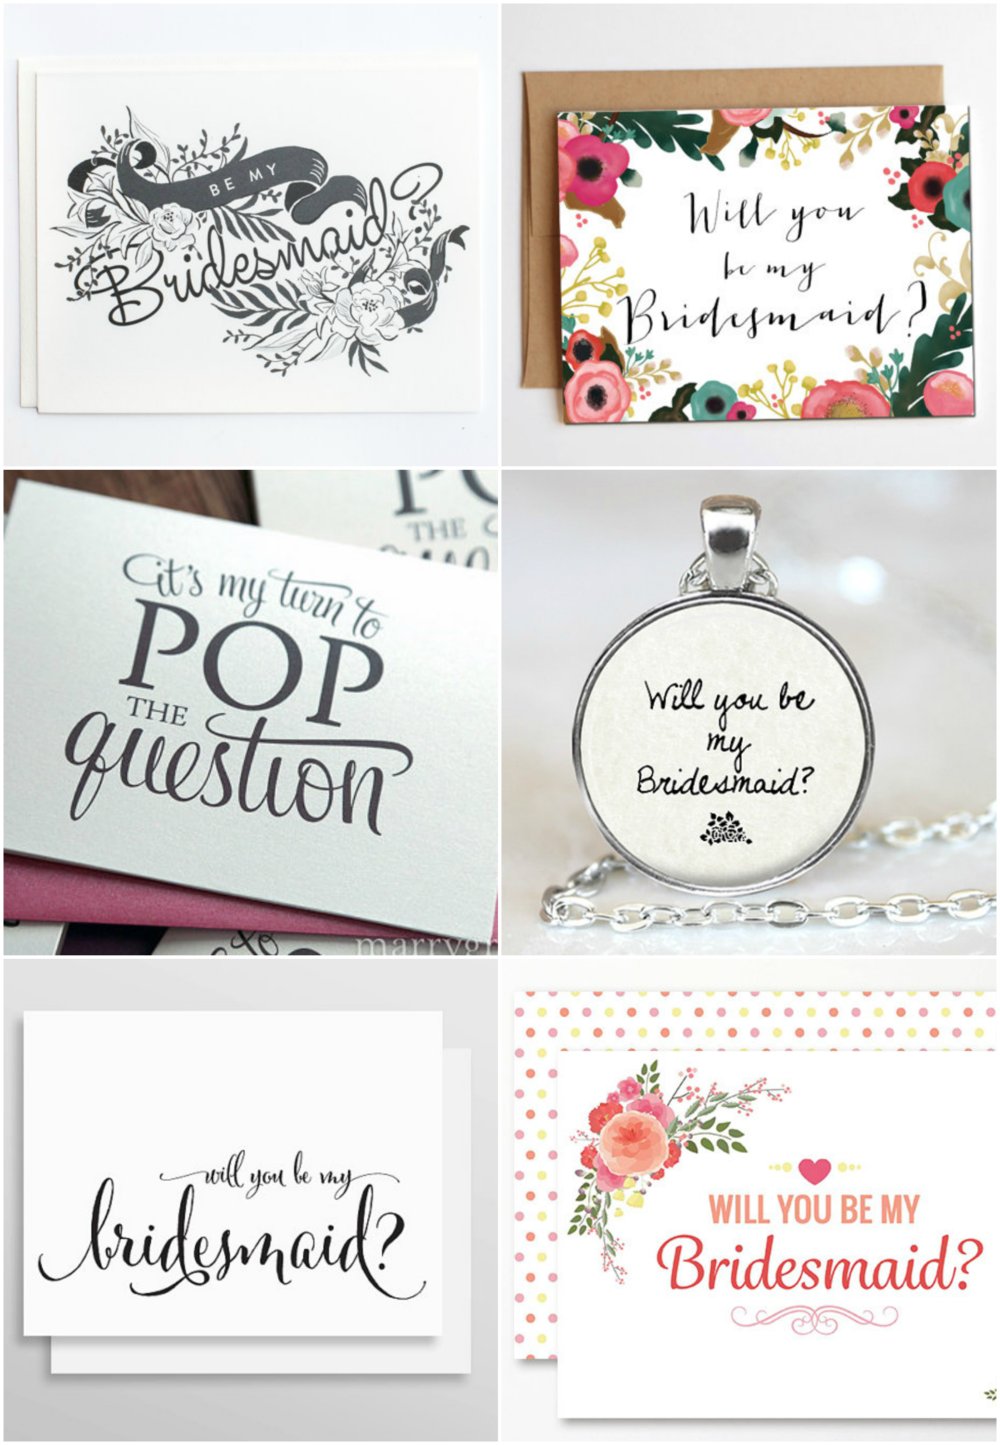 6 Beautiful Bridesmaids Asks - Paper Swallow Events